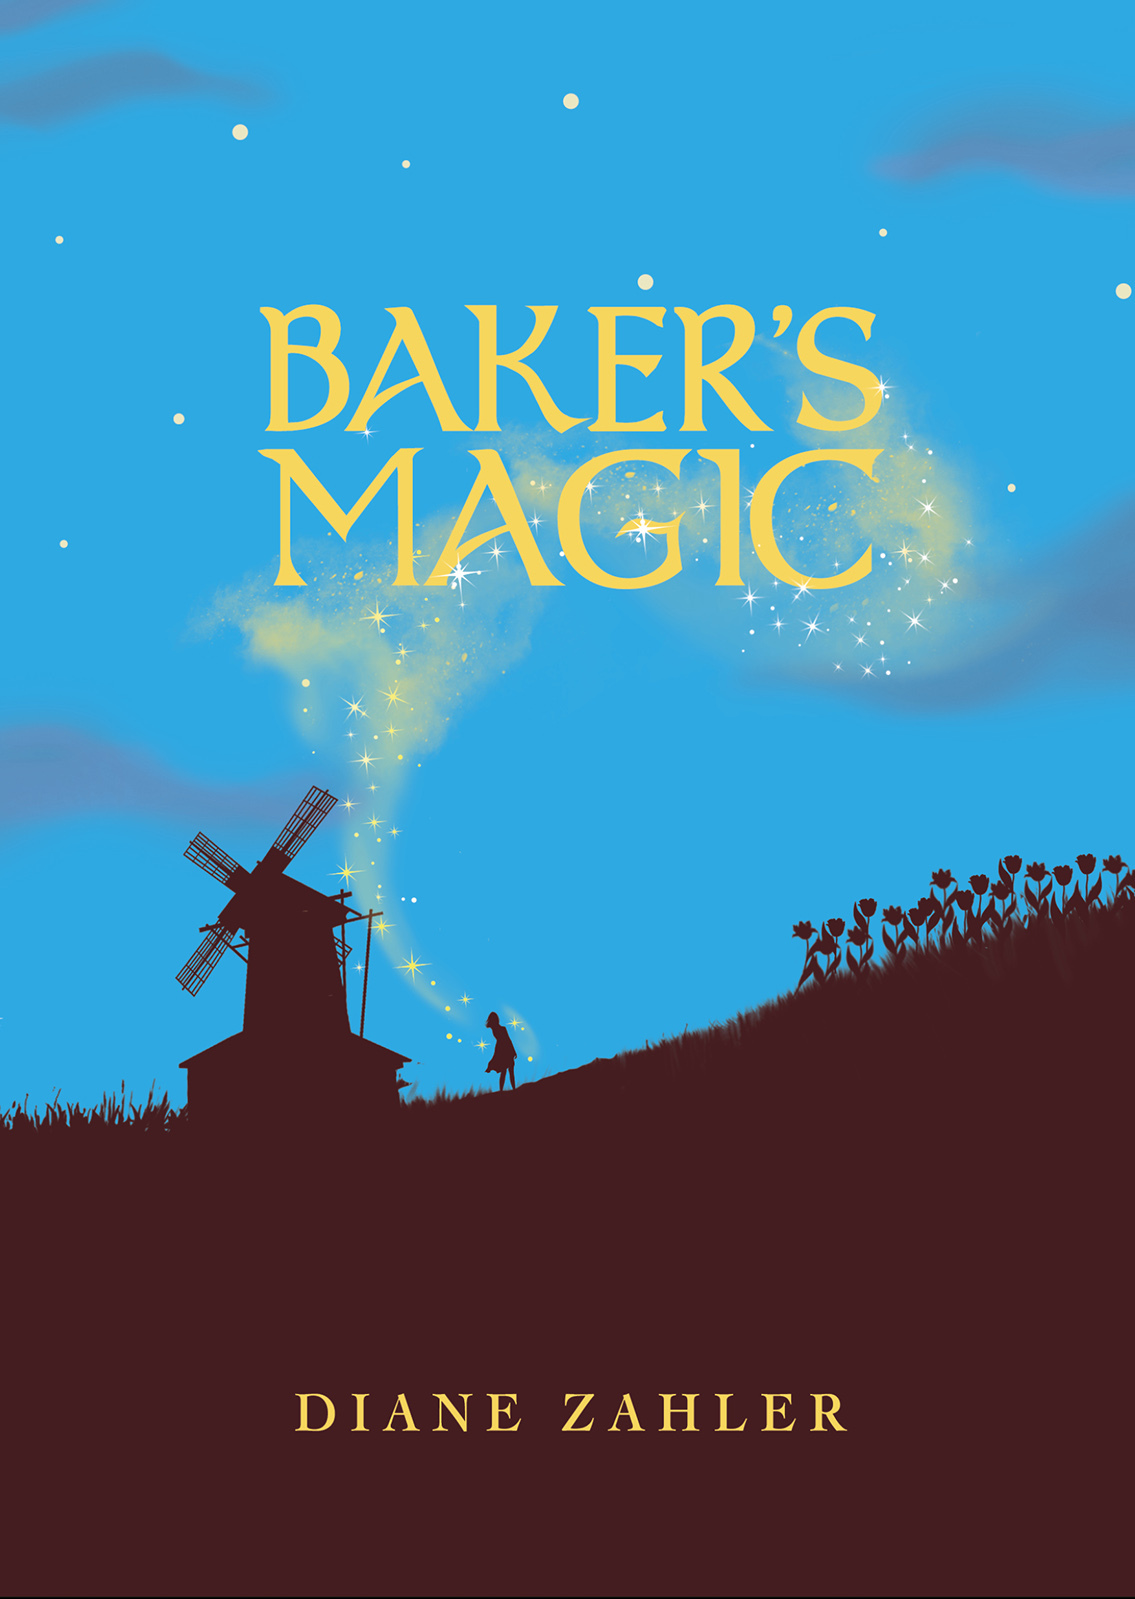 Baker's Magic